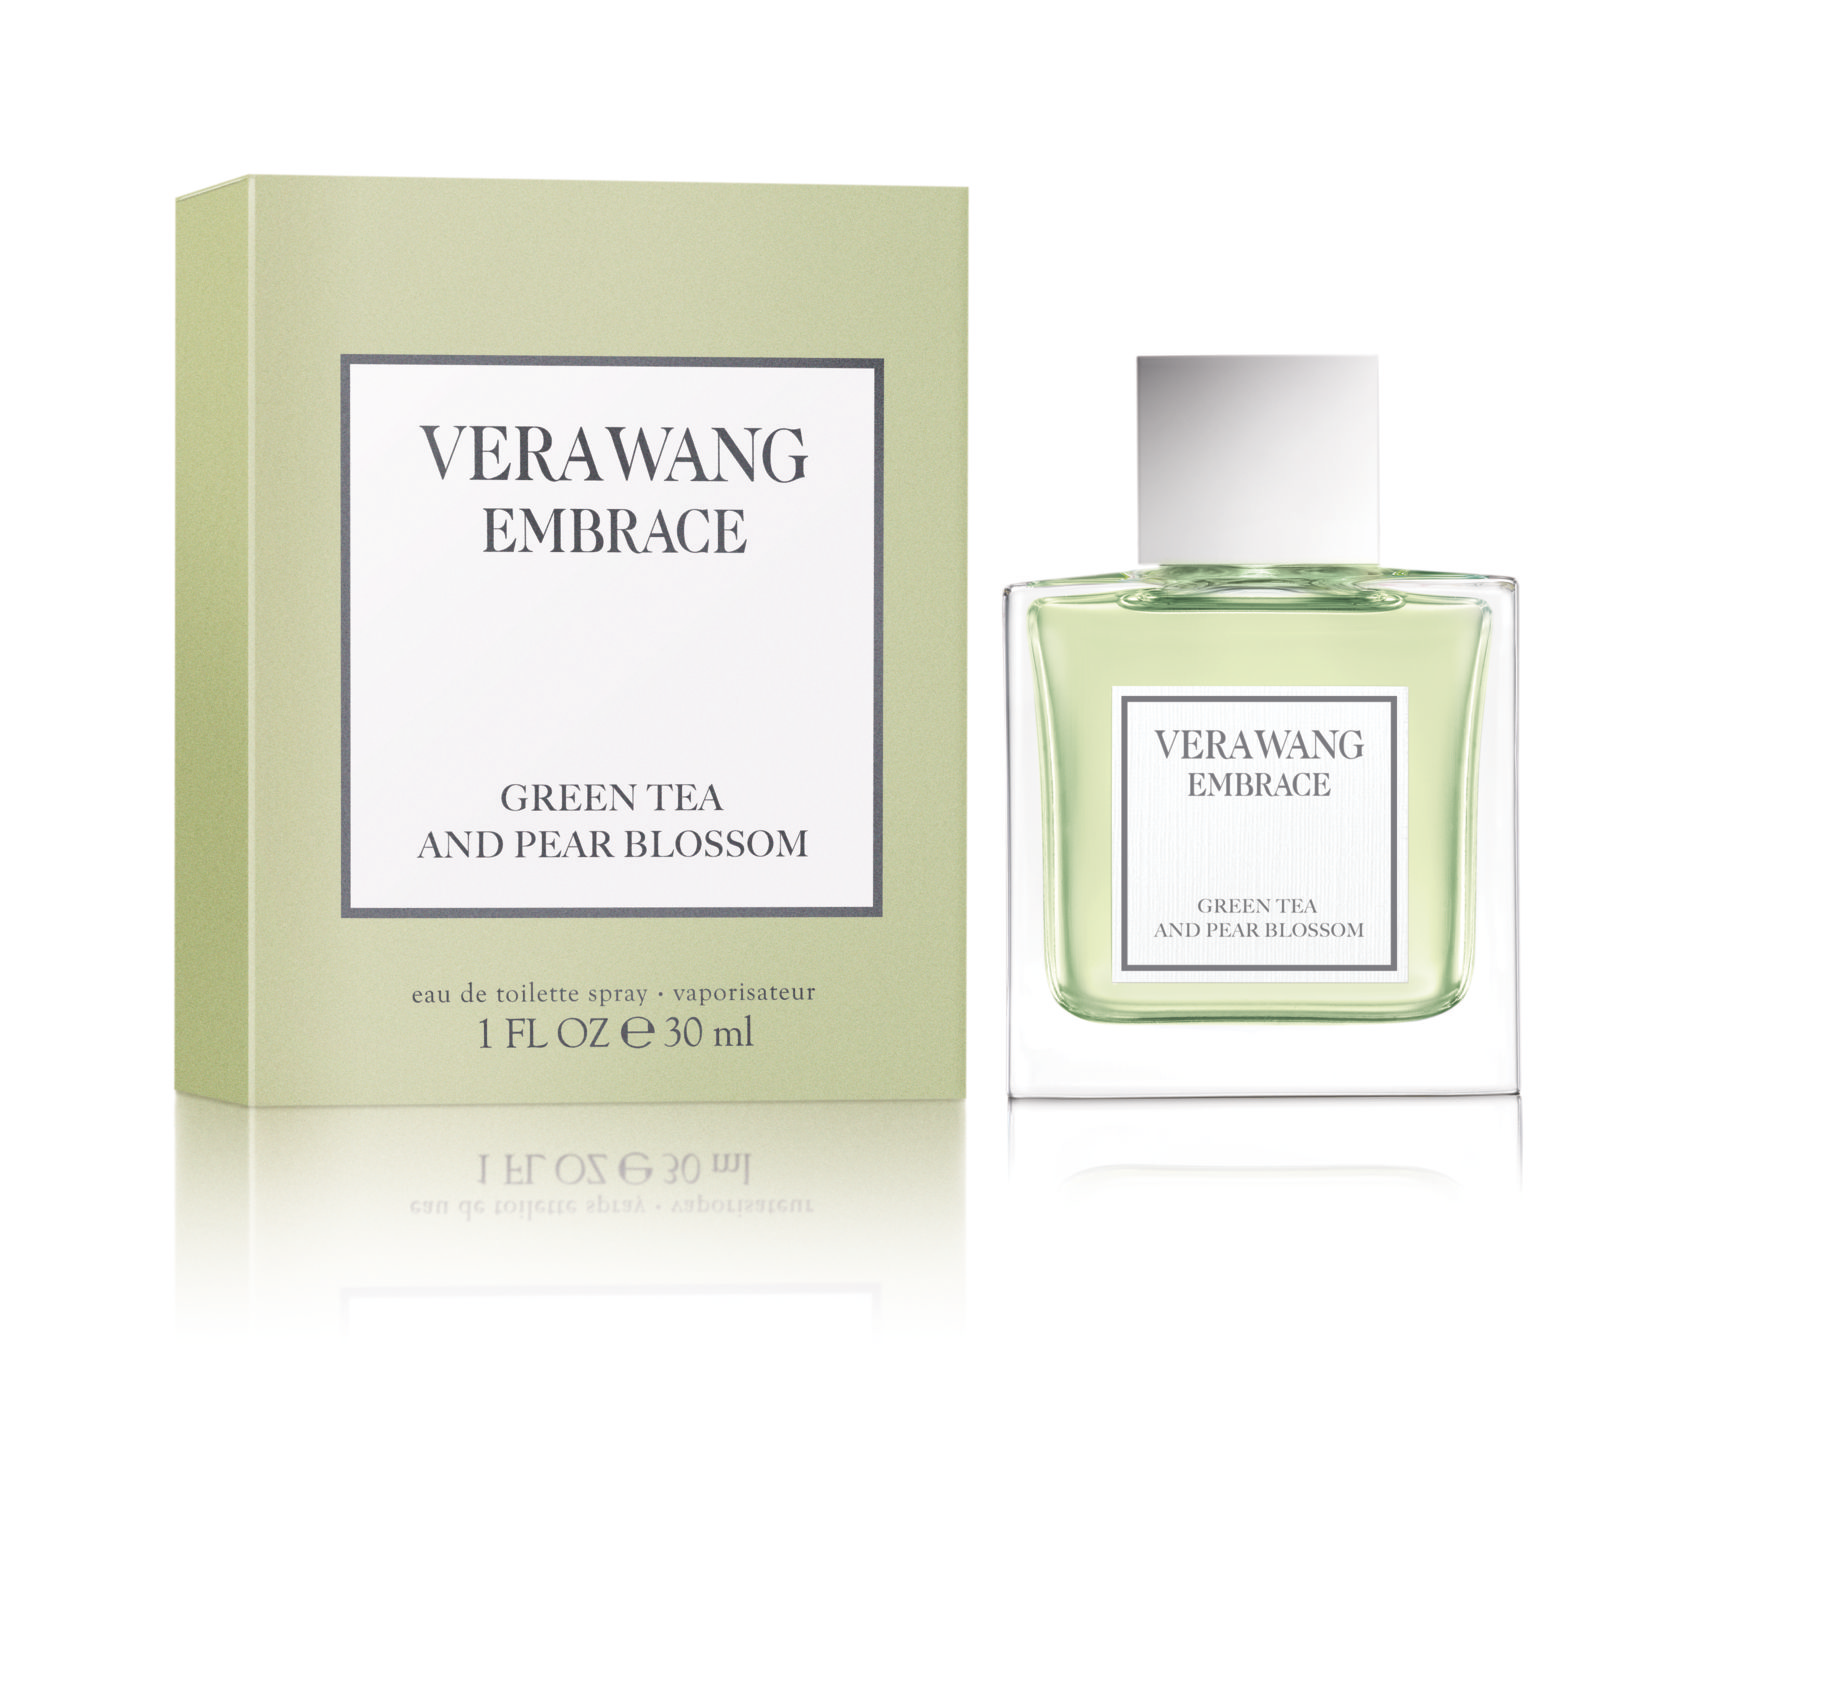 Vera Wang Embrace Green Tea & Pear Blossom